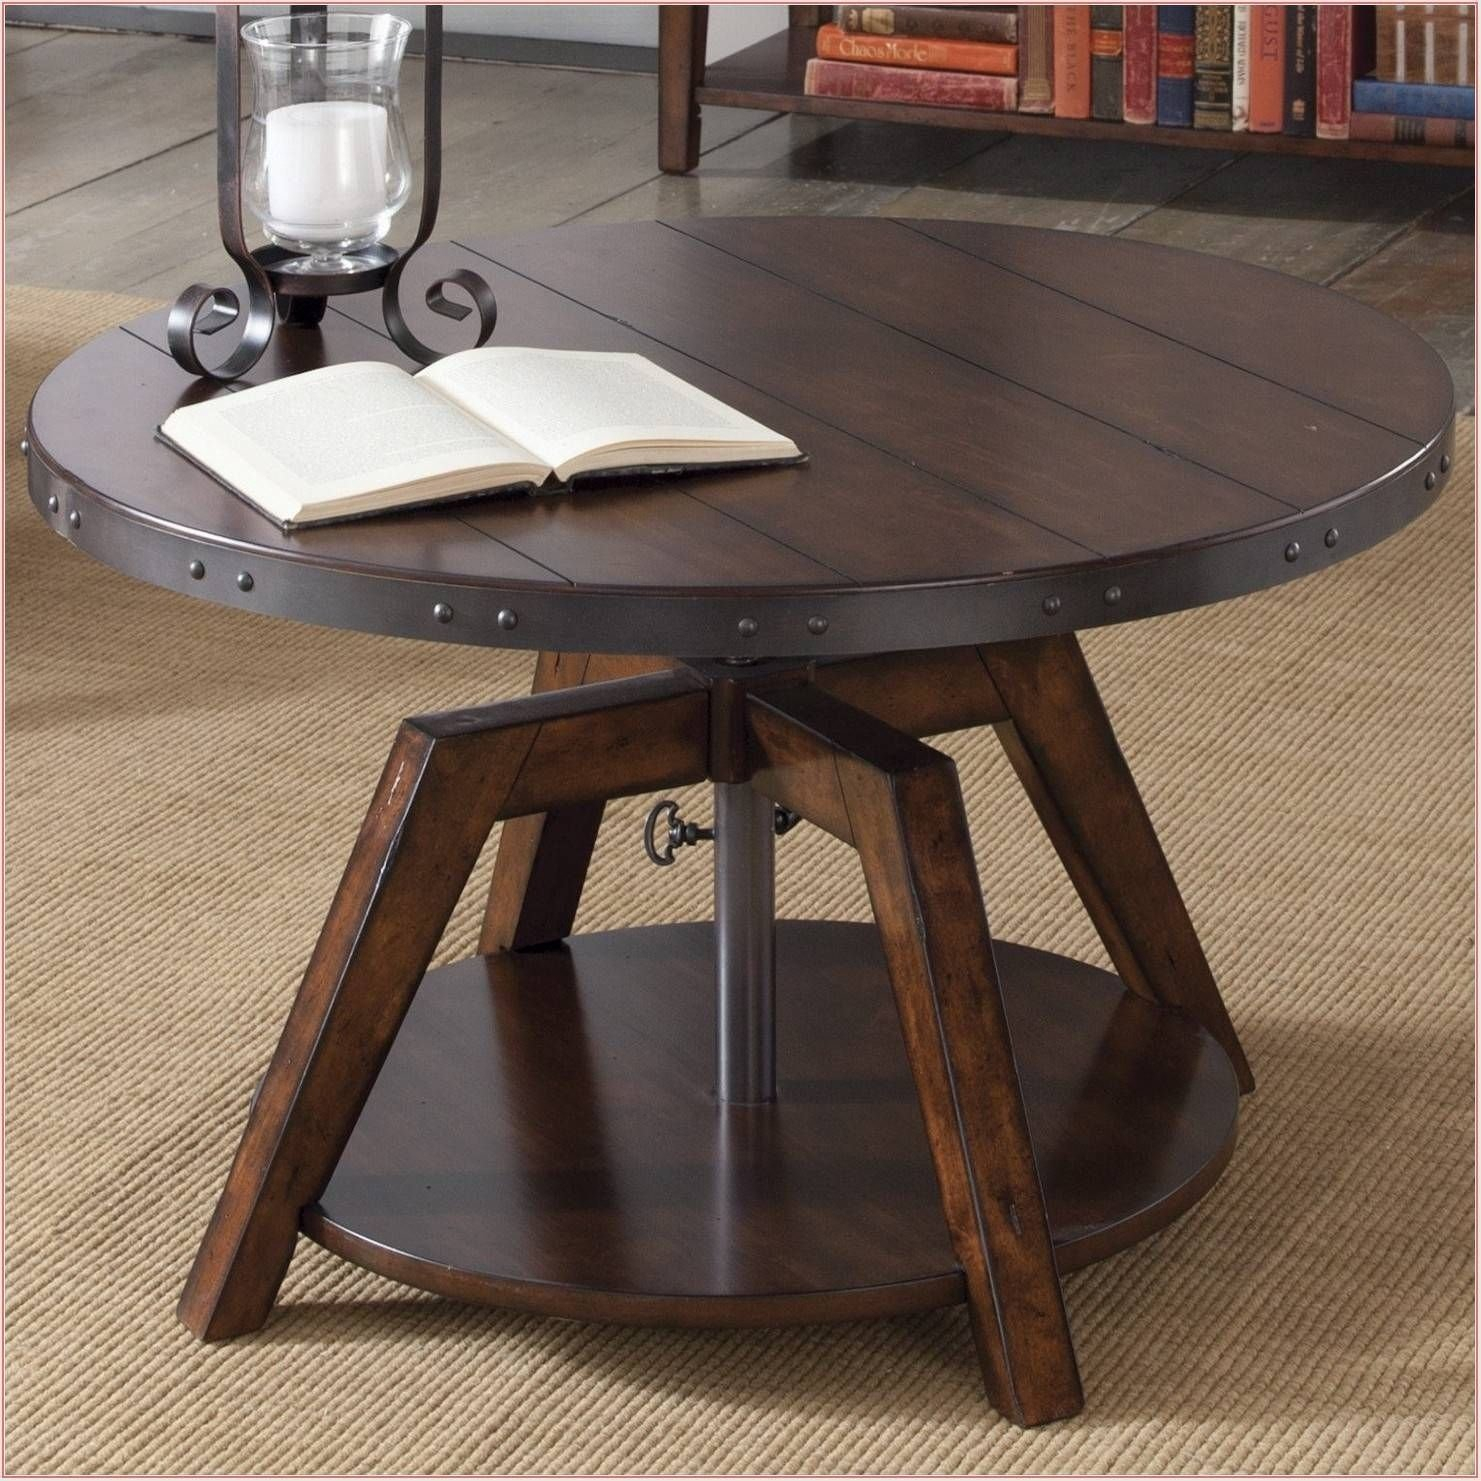 50 Amazing Convertible Coffee Table To Dining Table Up To 70 Off in sizing 1481 X 1481